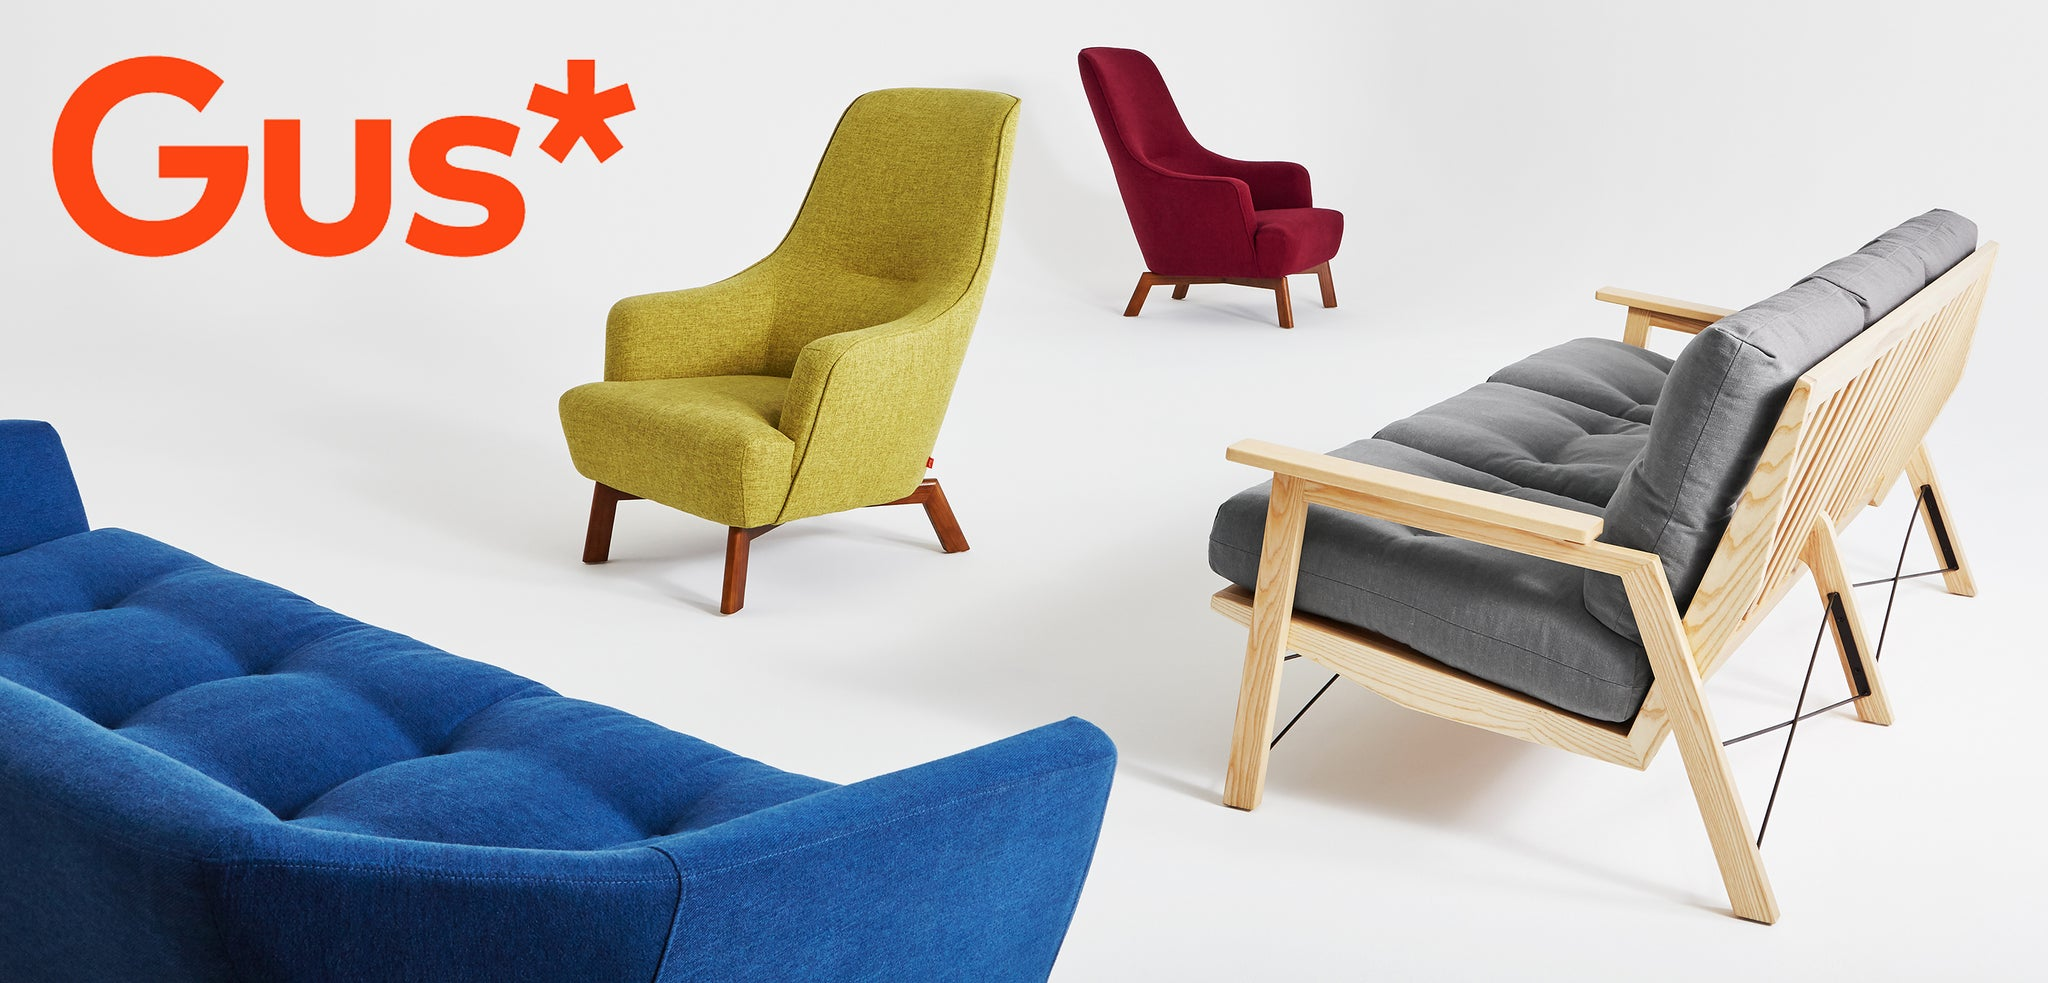 TouchGOODS Is Proud To Be An Official Long Island Retailer Of The Gus* Modern  Furniture Collection. Gus* Design Group Is A Furniture Design And ...